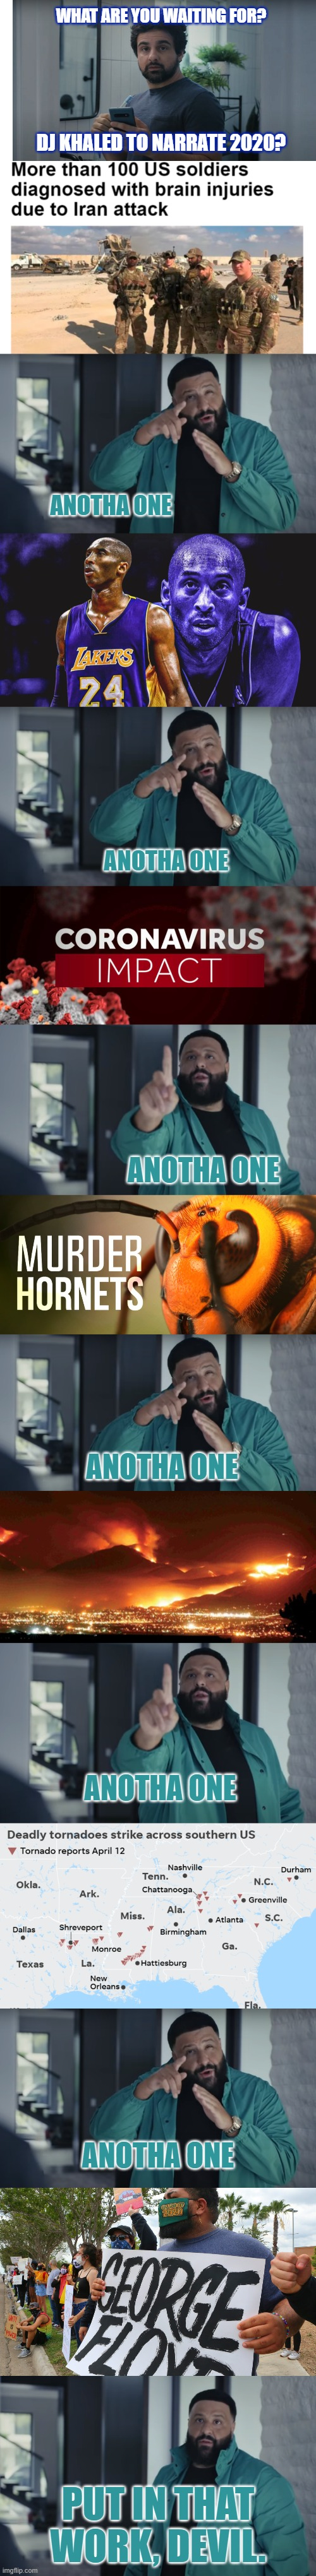 Geico. 15 Minutes In 2020 Could Kill You. |  WHAT ARE YOU WAITING FOR? DJ KHALED TO NARRATE 2020? ANOTHA ONE; ANOTHA ONE; ANOTHA ONE; ANOTHA ONE; ANOTHA ONE; ANOTHA ONE; PUT IN THAT WORK, DEVIL. | image tagged in geico,2020,dj khaled,commercials,news,music | made w/ Imgflip meme maker